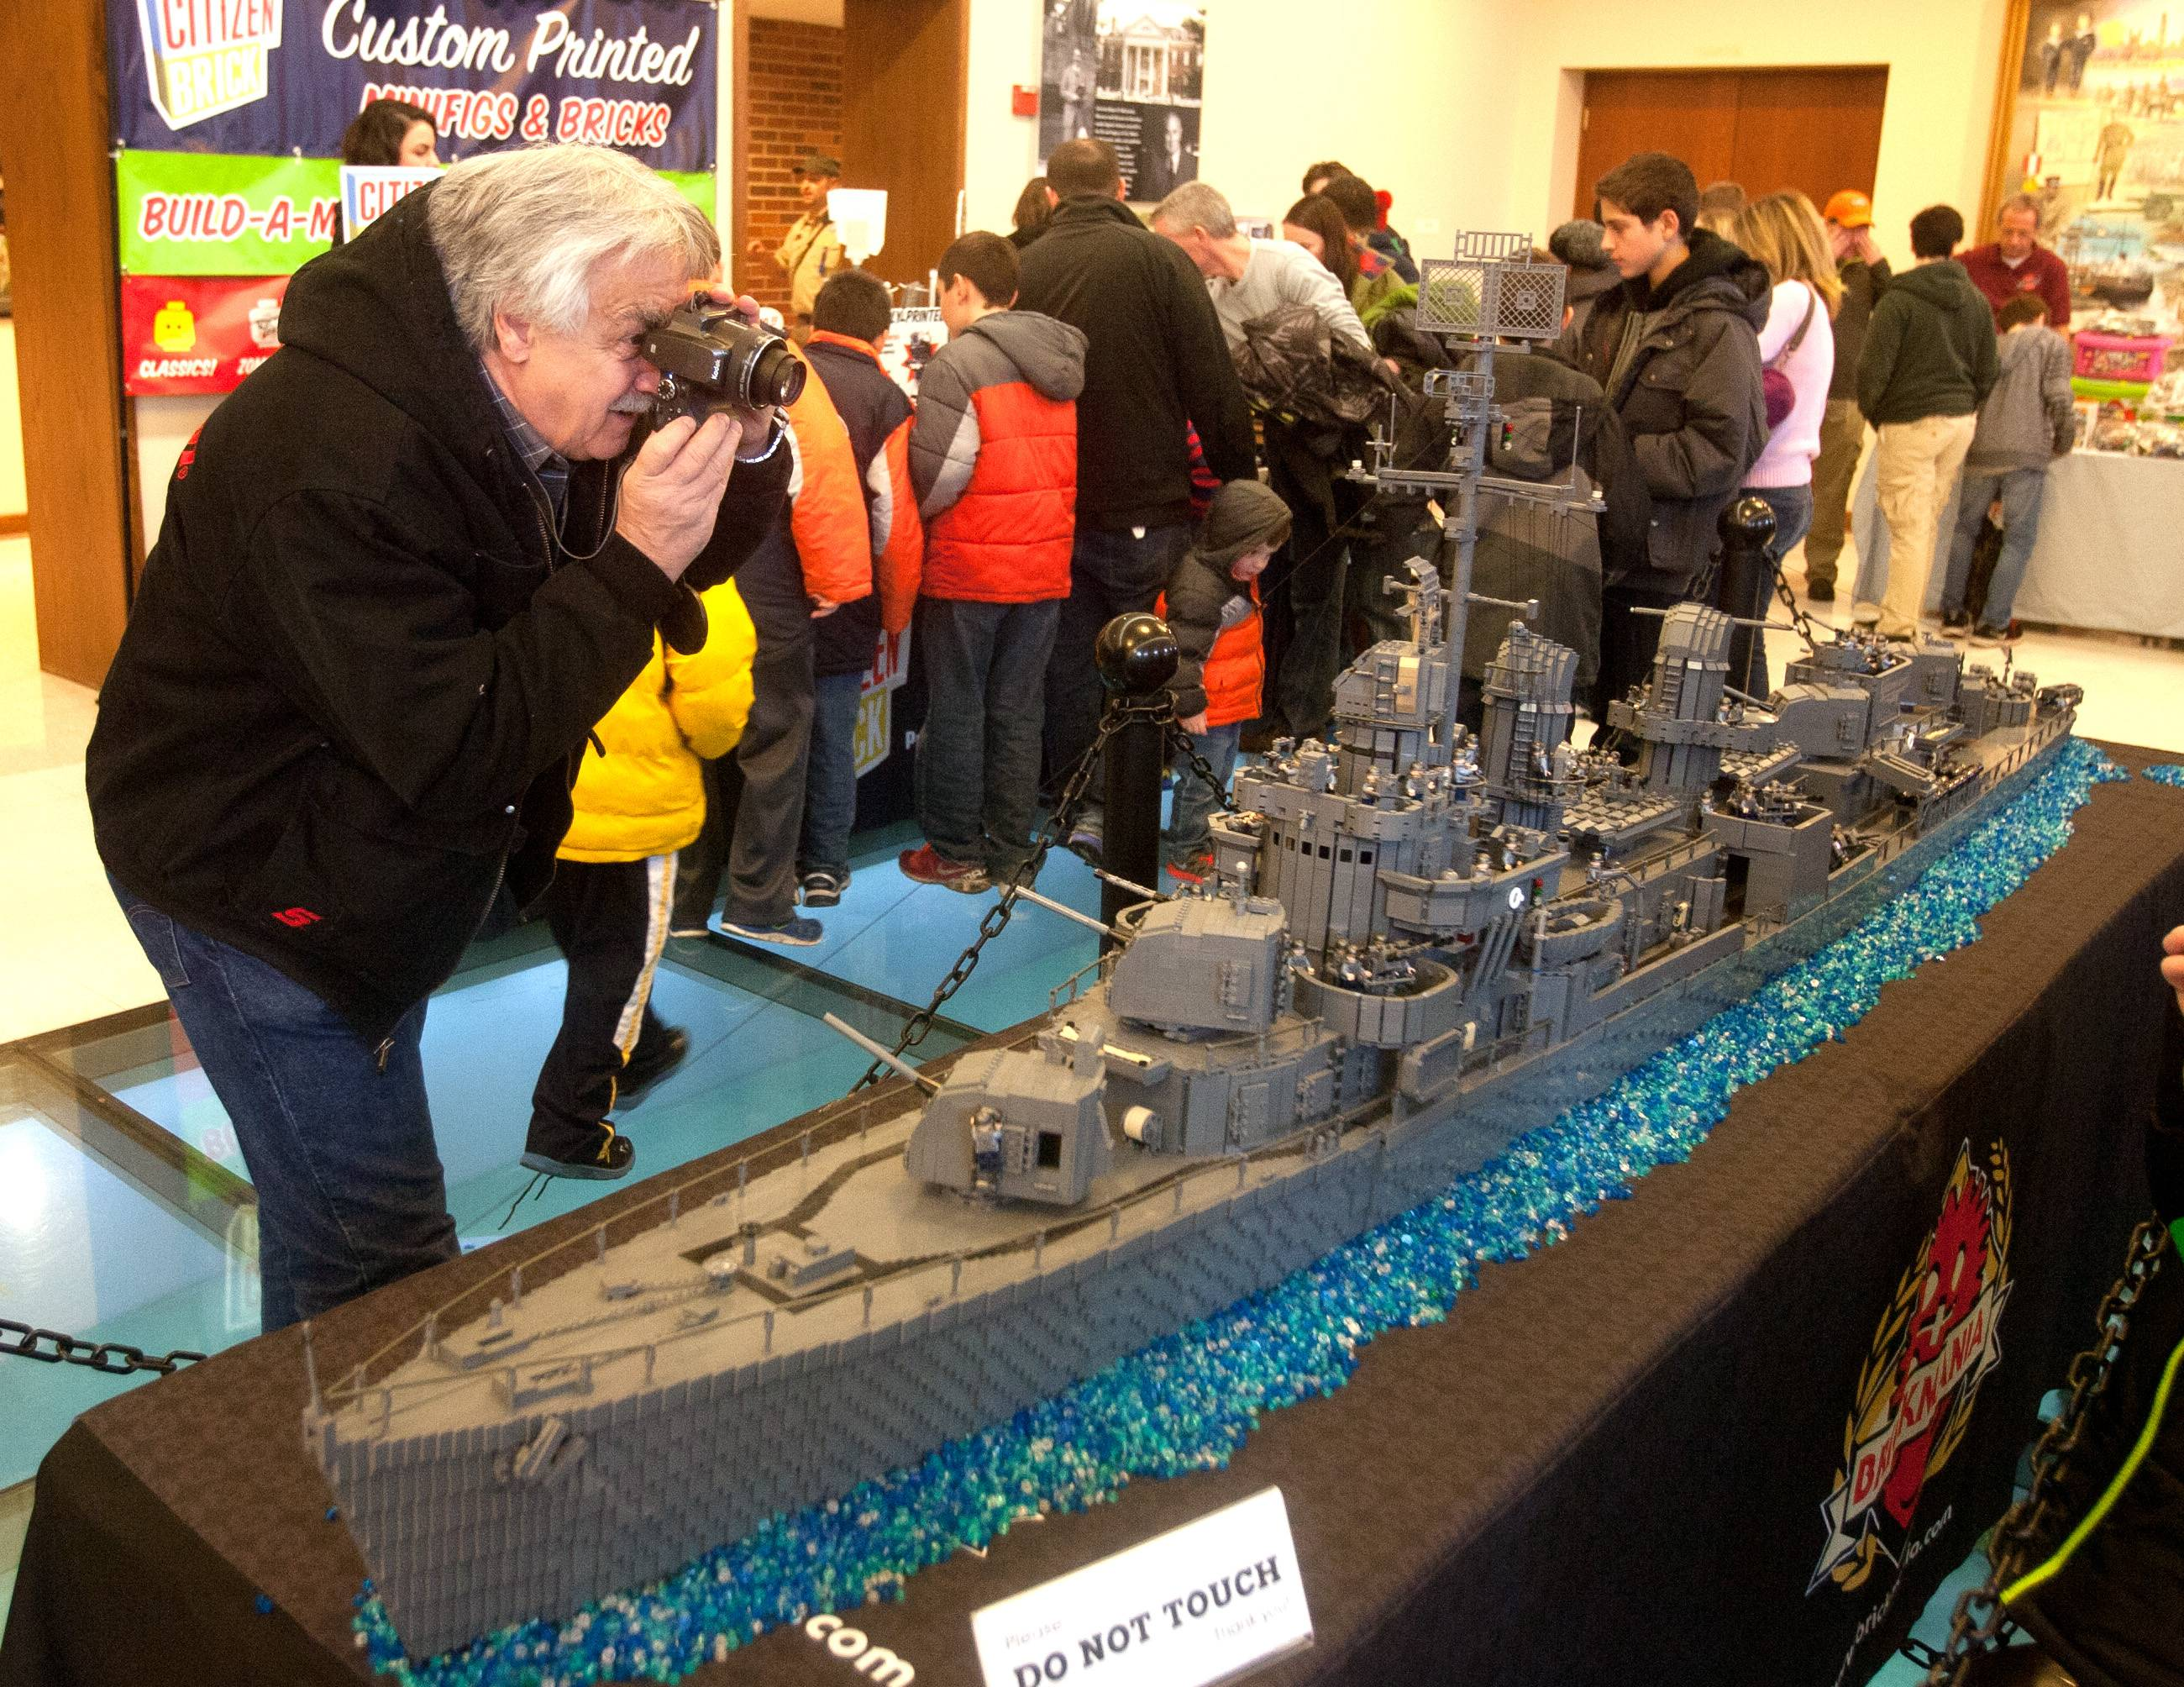 This Lego replica of the USS Nicholas, a destroyer that was commissioned on June 4, 1942, was a highlight of last year's Lego Train Show at Cantigny. This year's show will feature of the replica USS Missouri battleship.